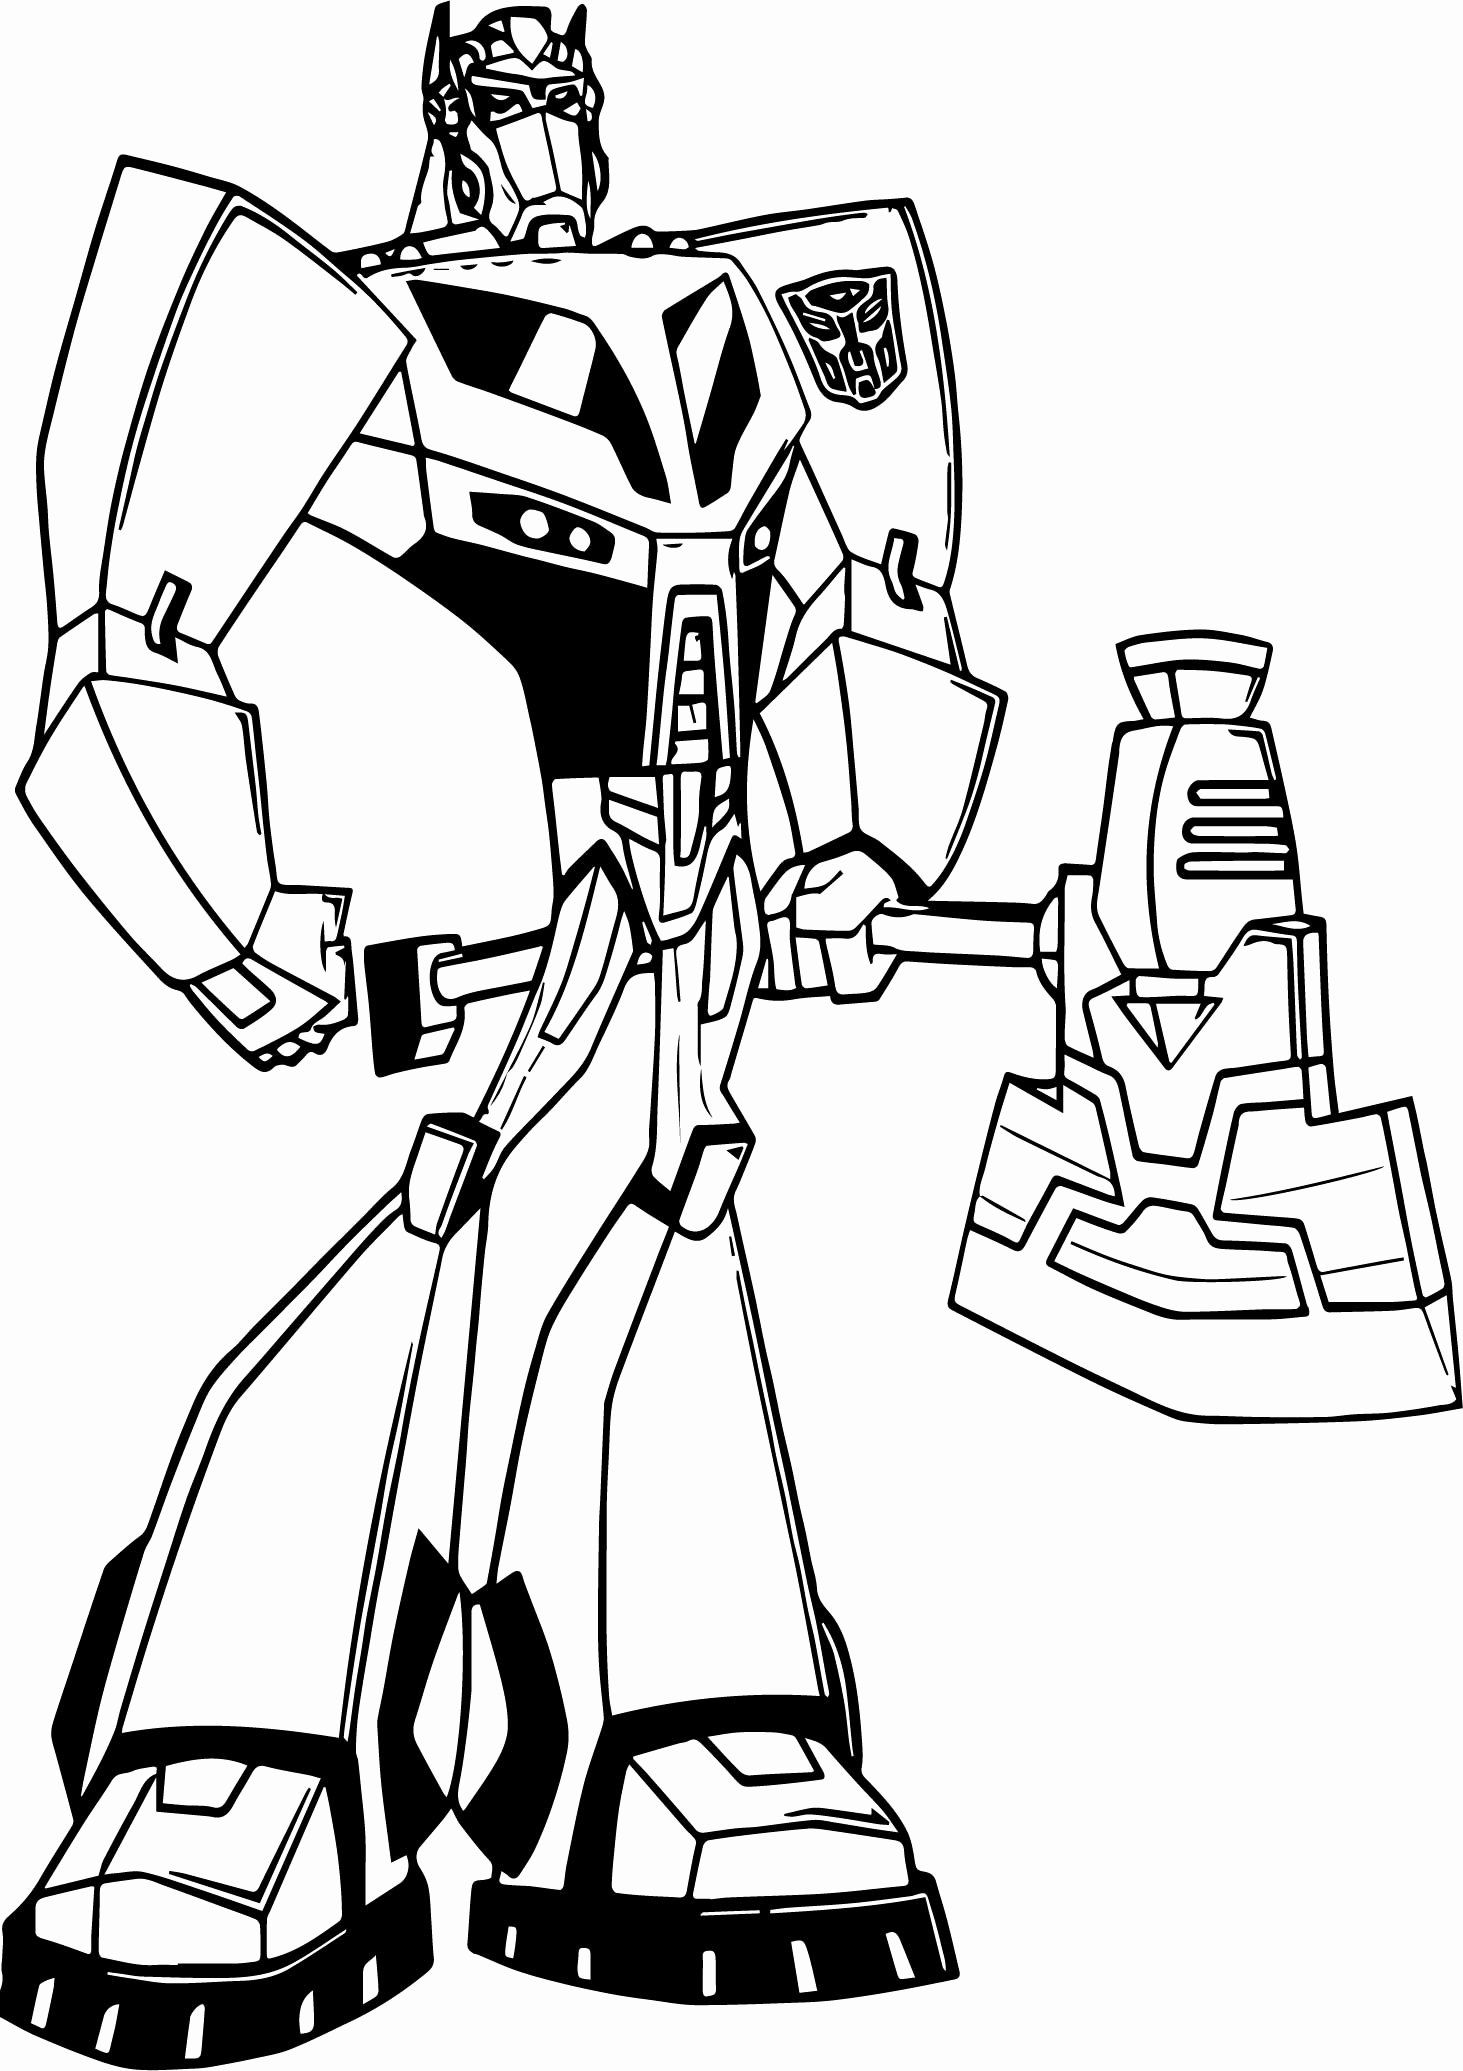 Transformers Bumblebee Coloring Page New Coloring Pages